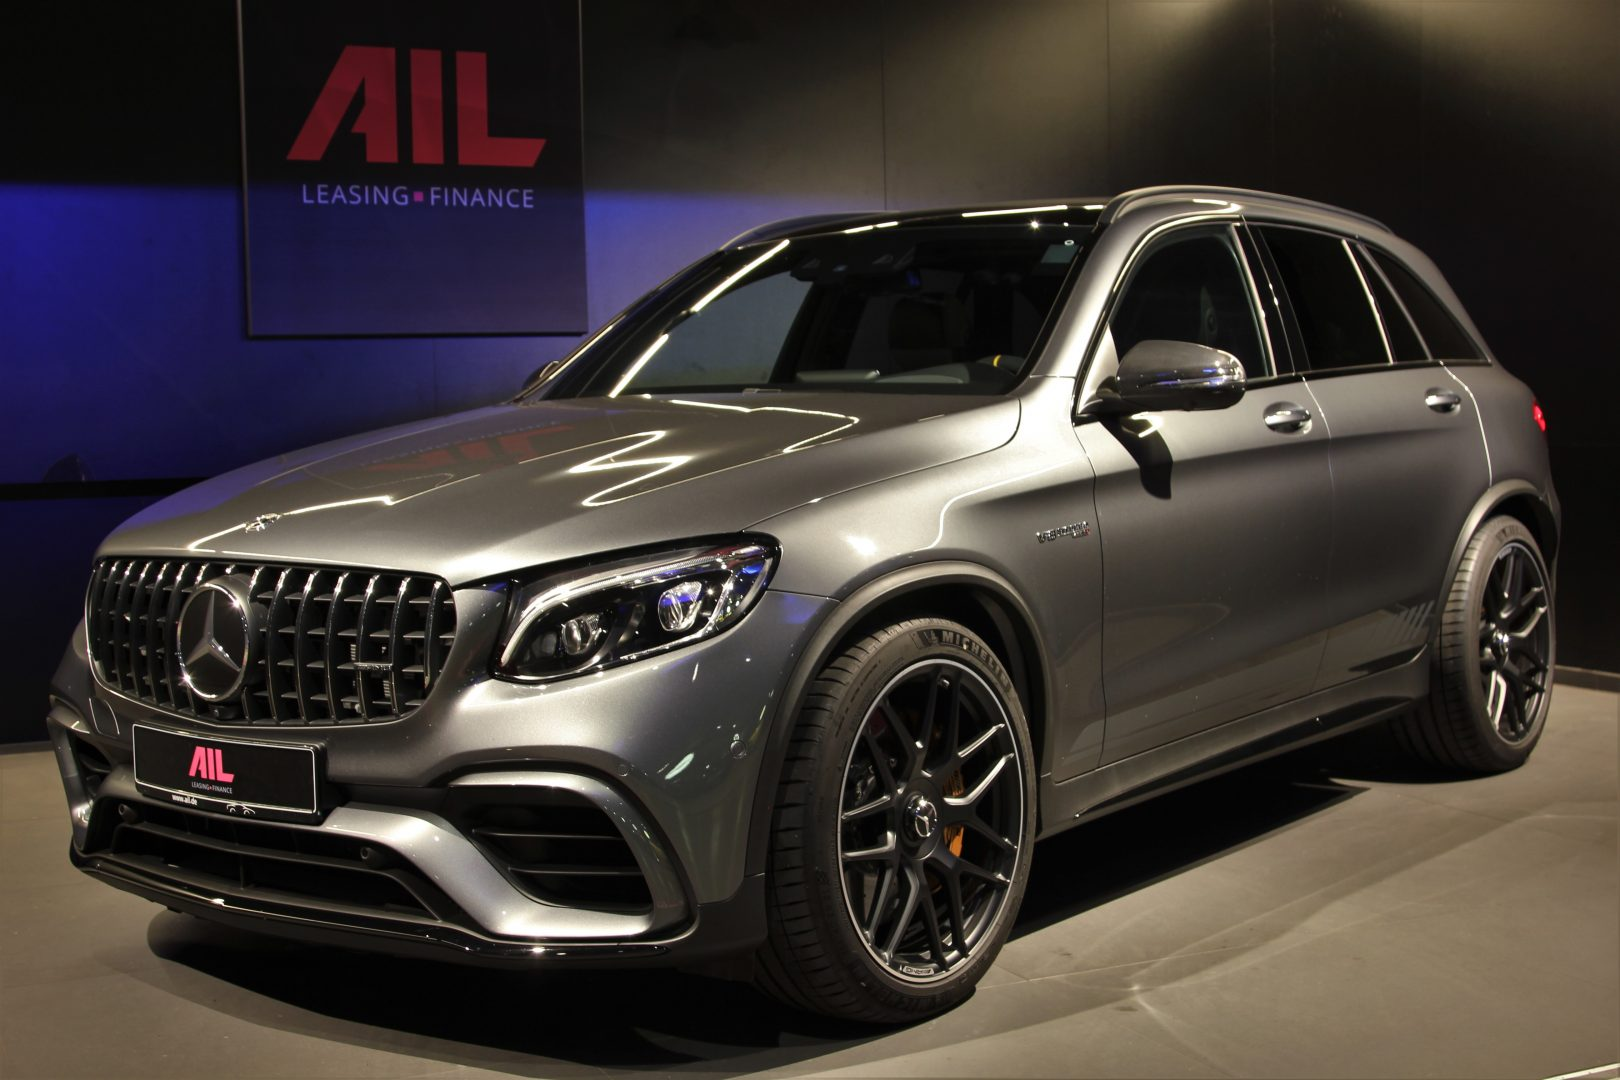 AIL Mercedes-Benz GLC 63 S AMG Edition 1 / CARBON / AMG TRACK 8